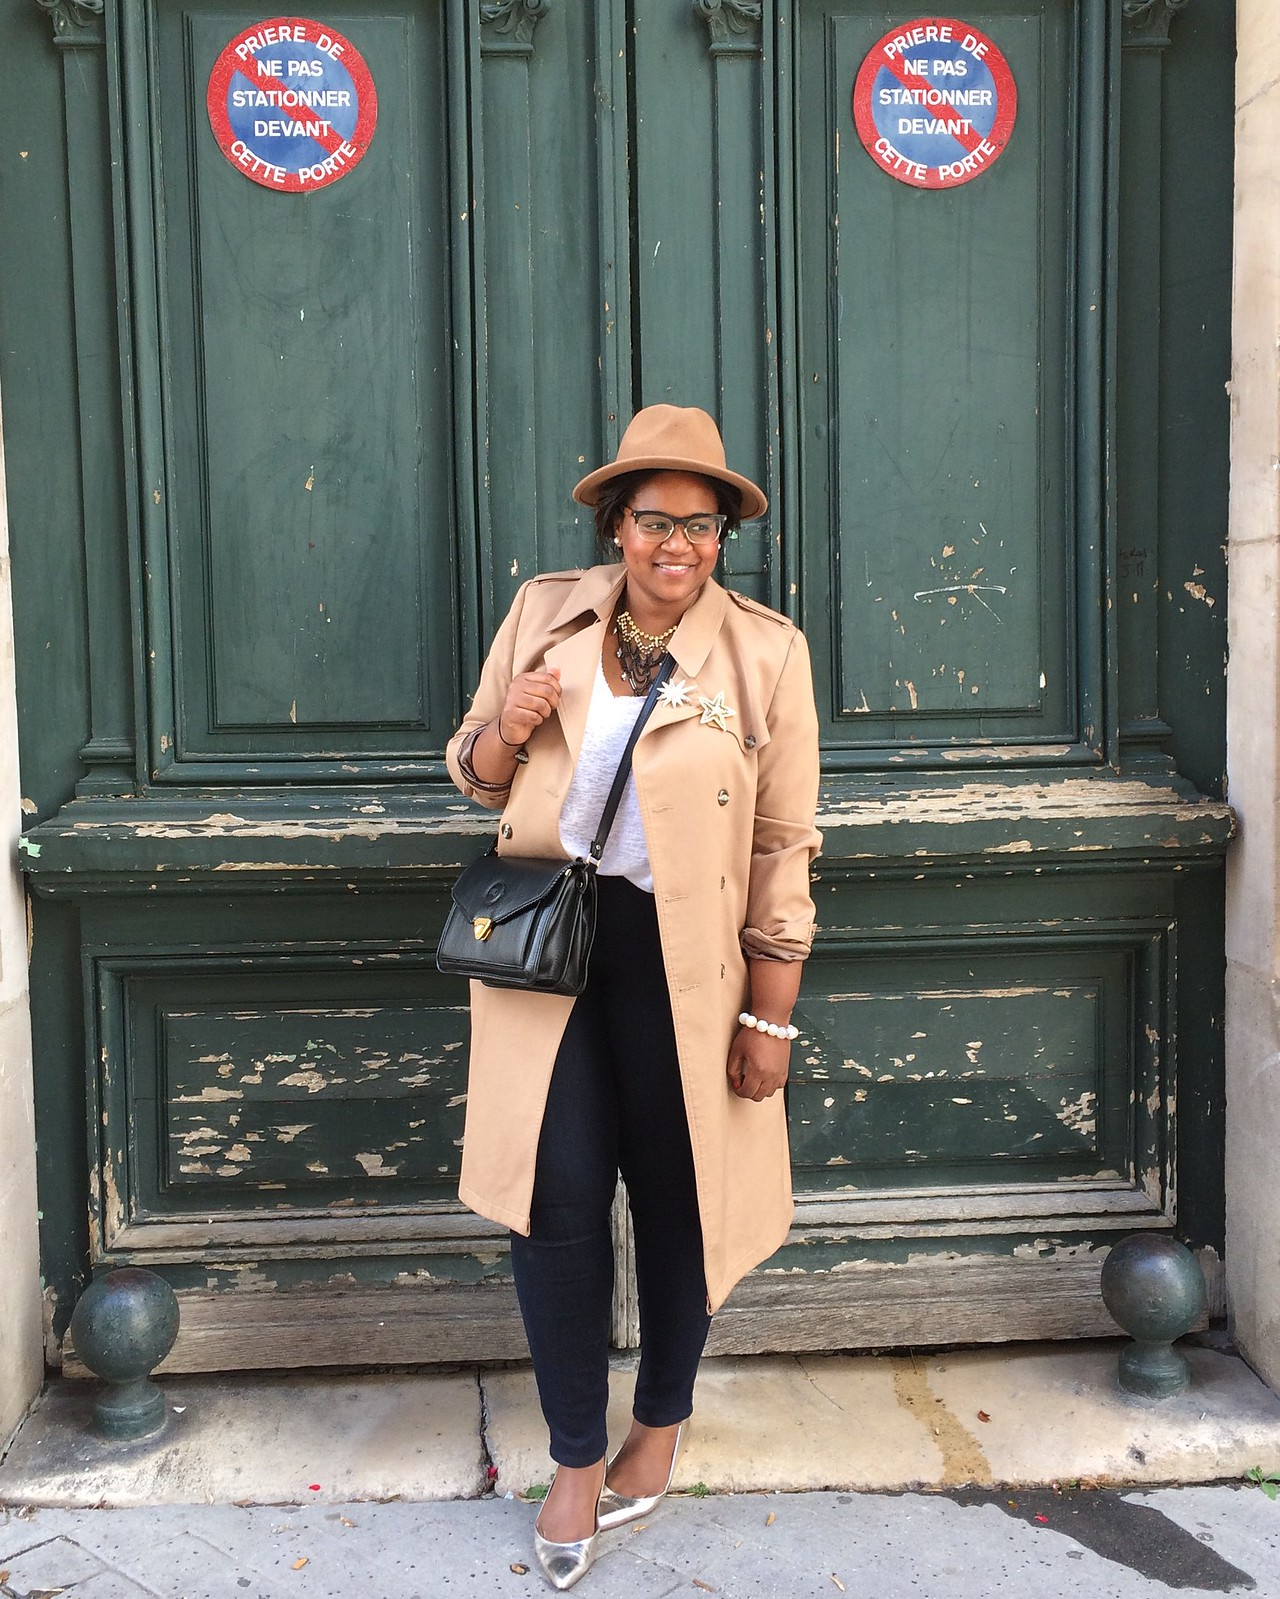 Trench+coat+visiting+paris